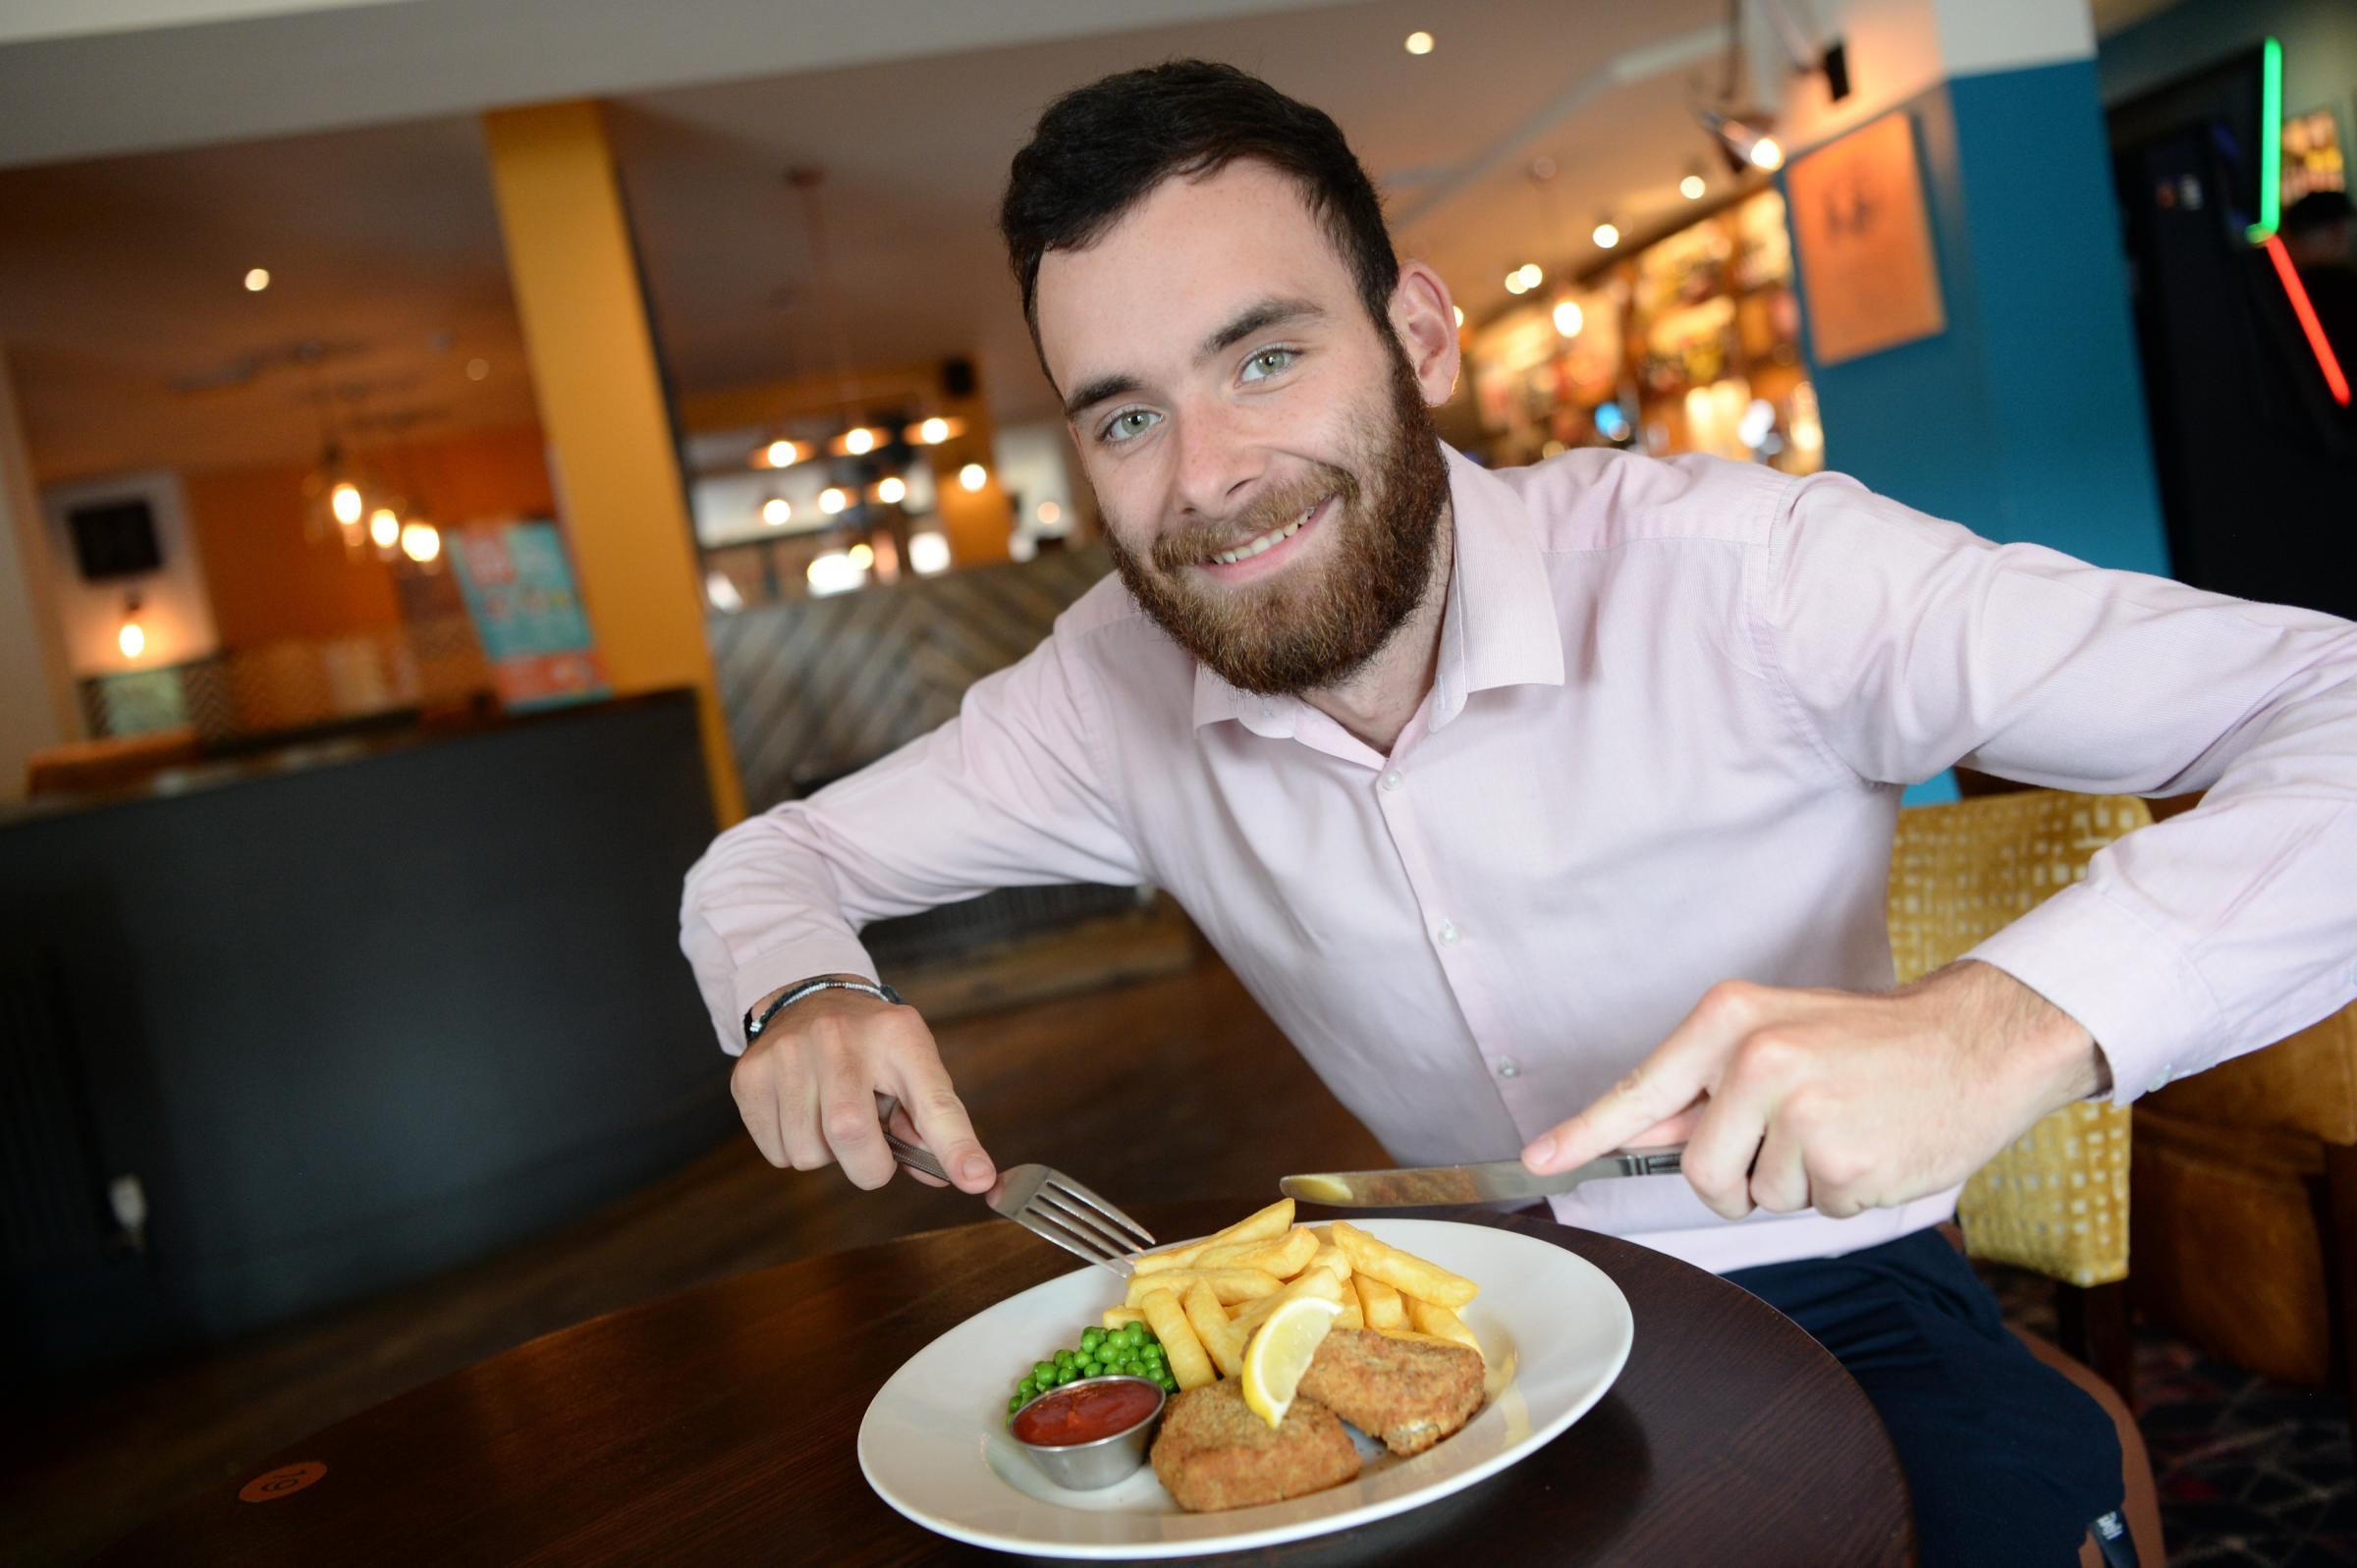 Vegan fish and chips are now on the menu